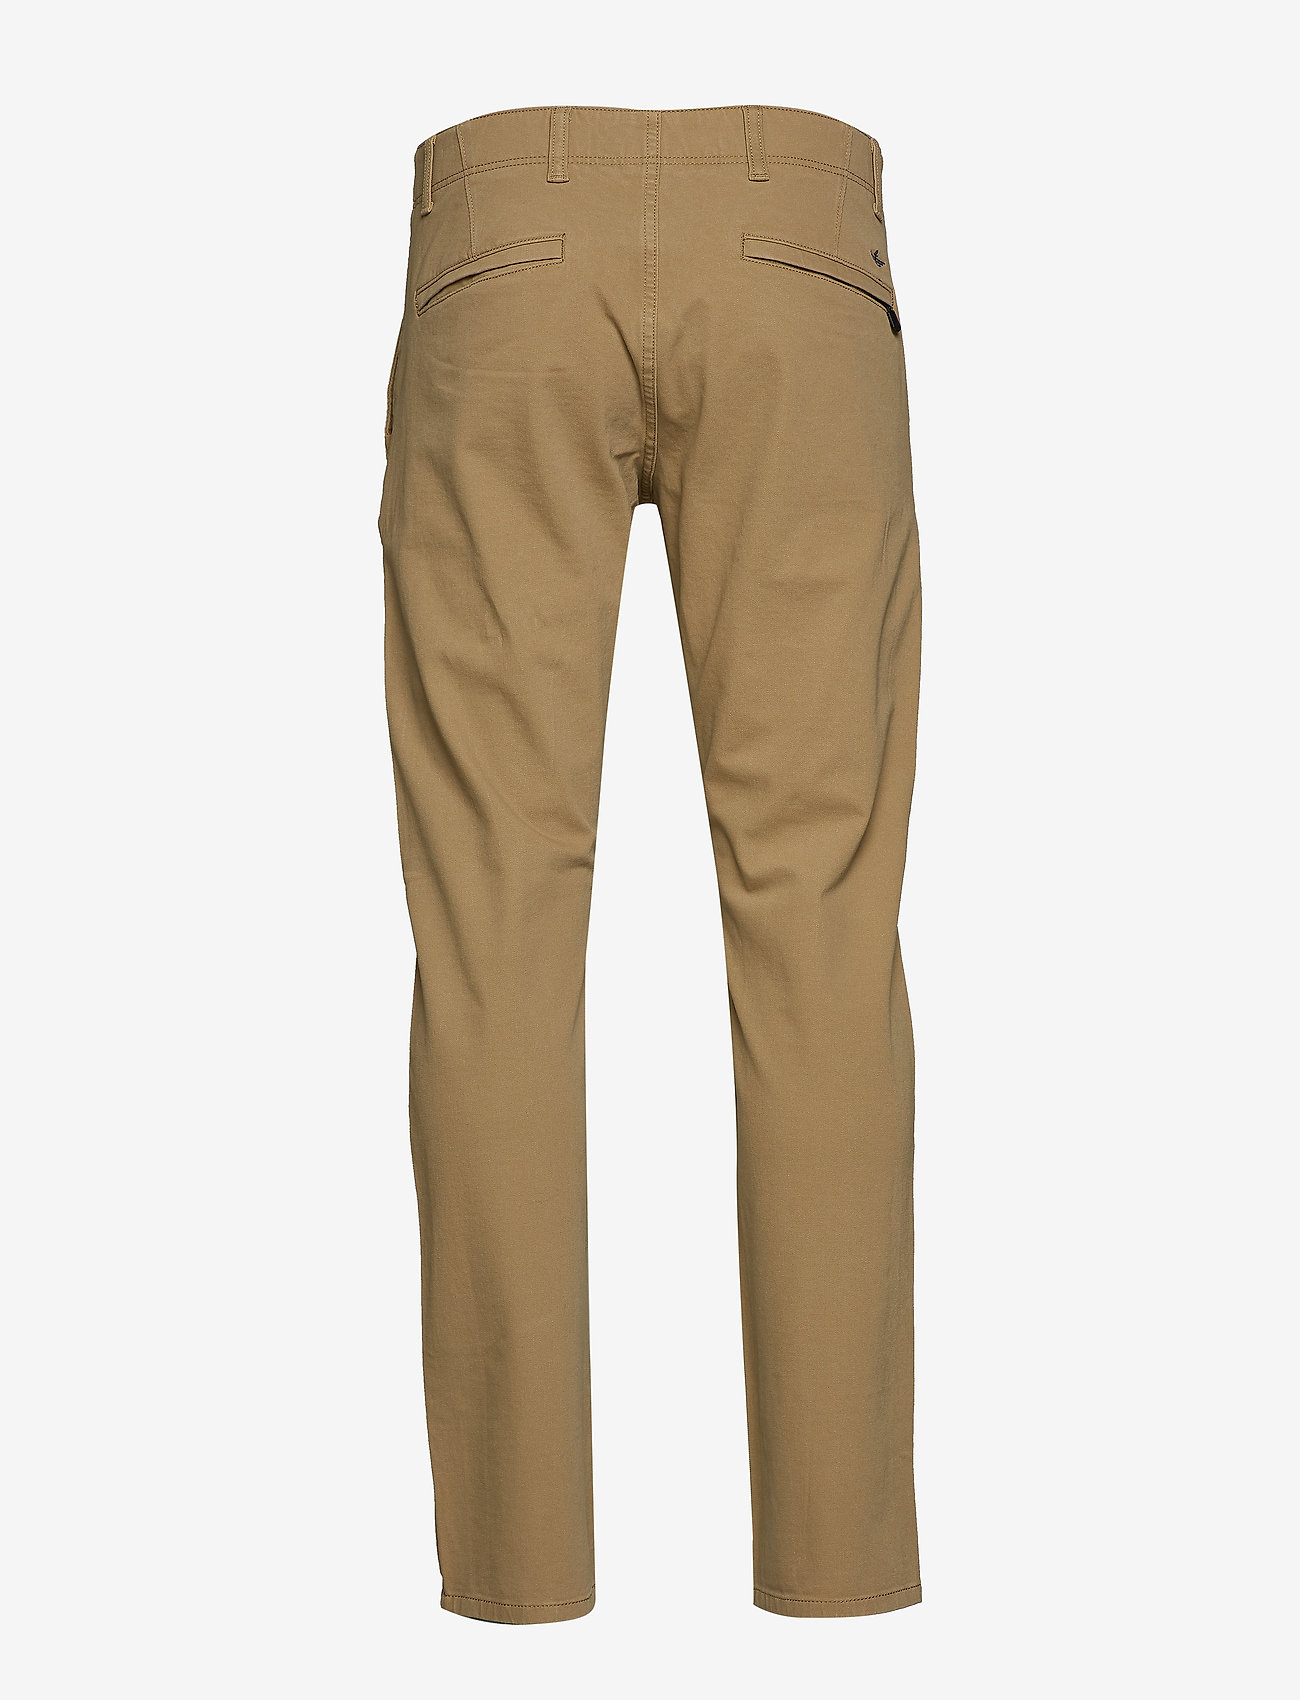 Dockers - ALPHA KHAKI 360 NEW BRITISH KH - chinos - neutrals - 1